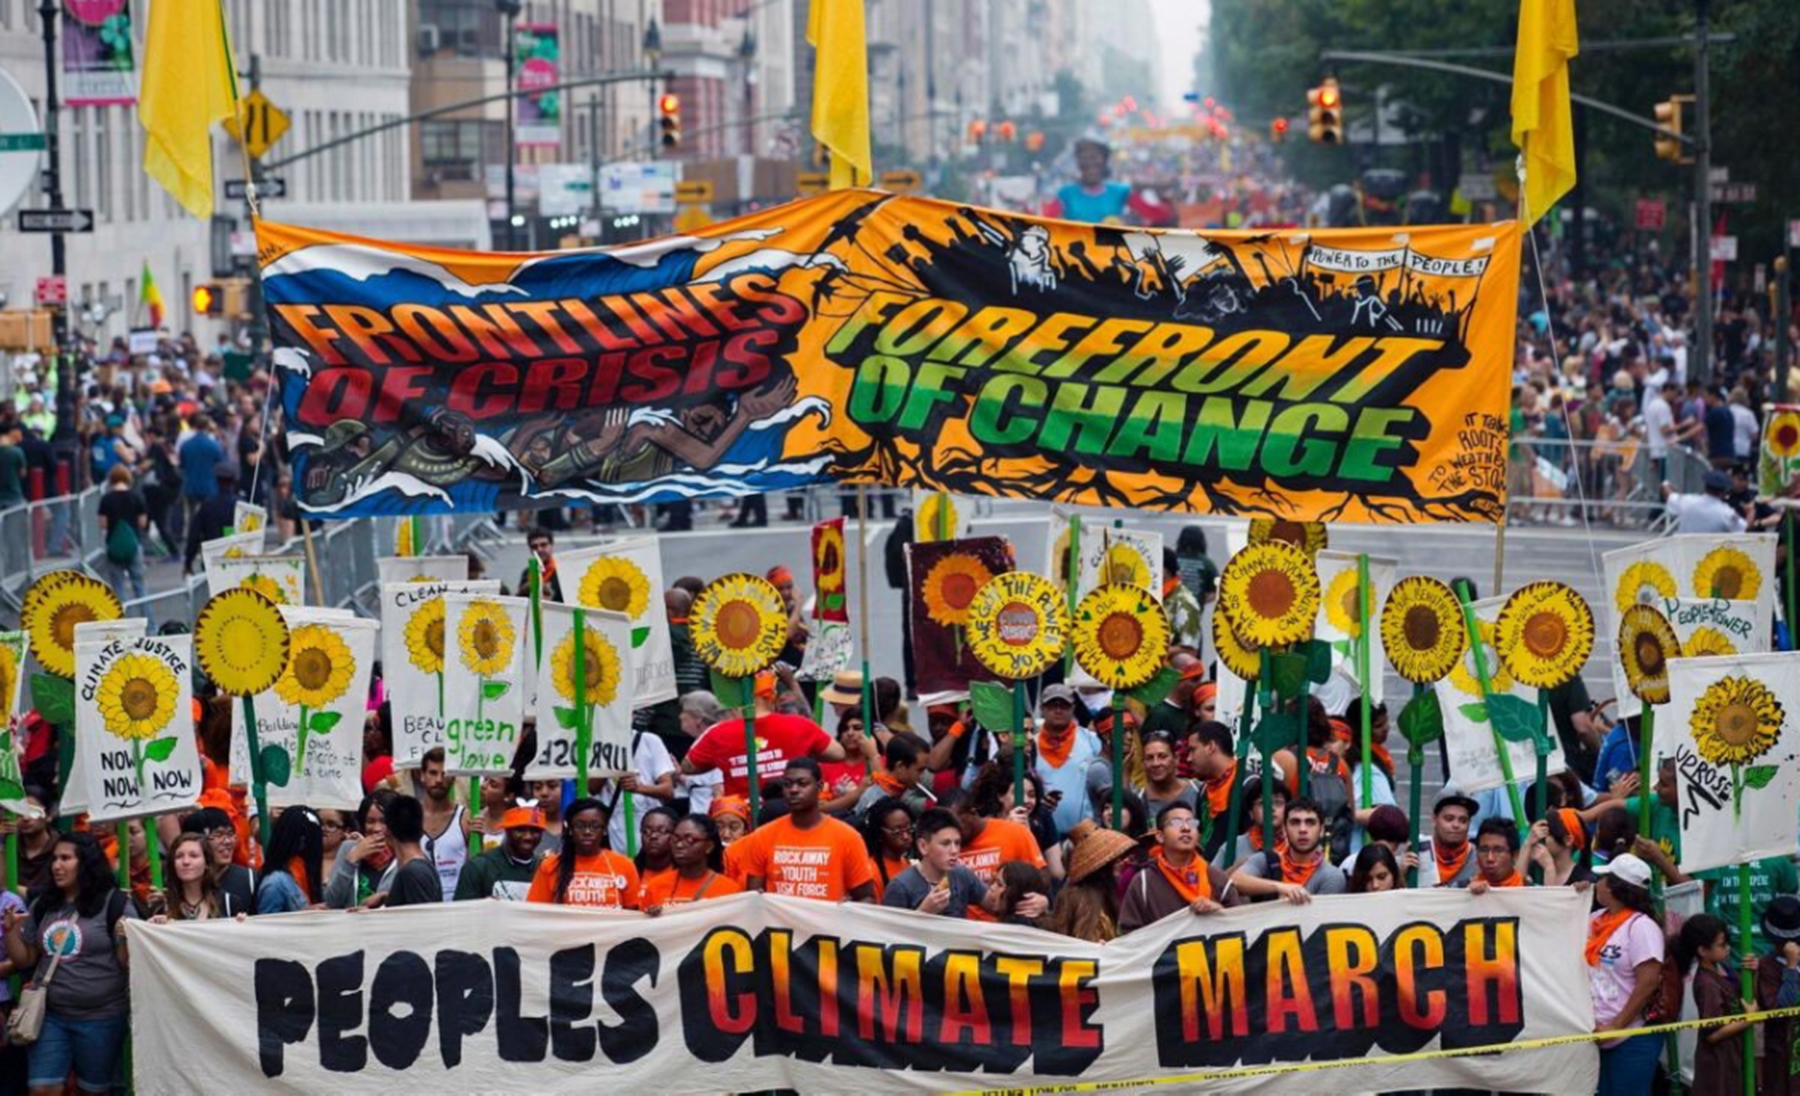 Unions are all in for People's Climate March, April 29